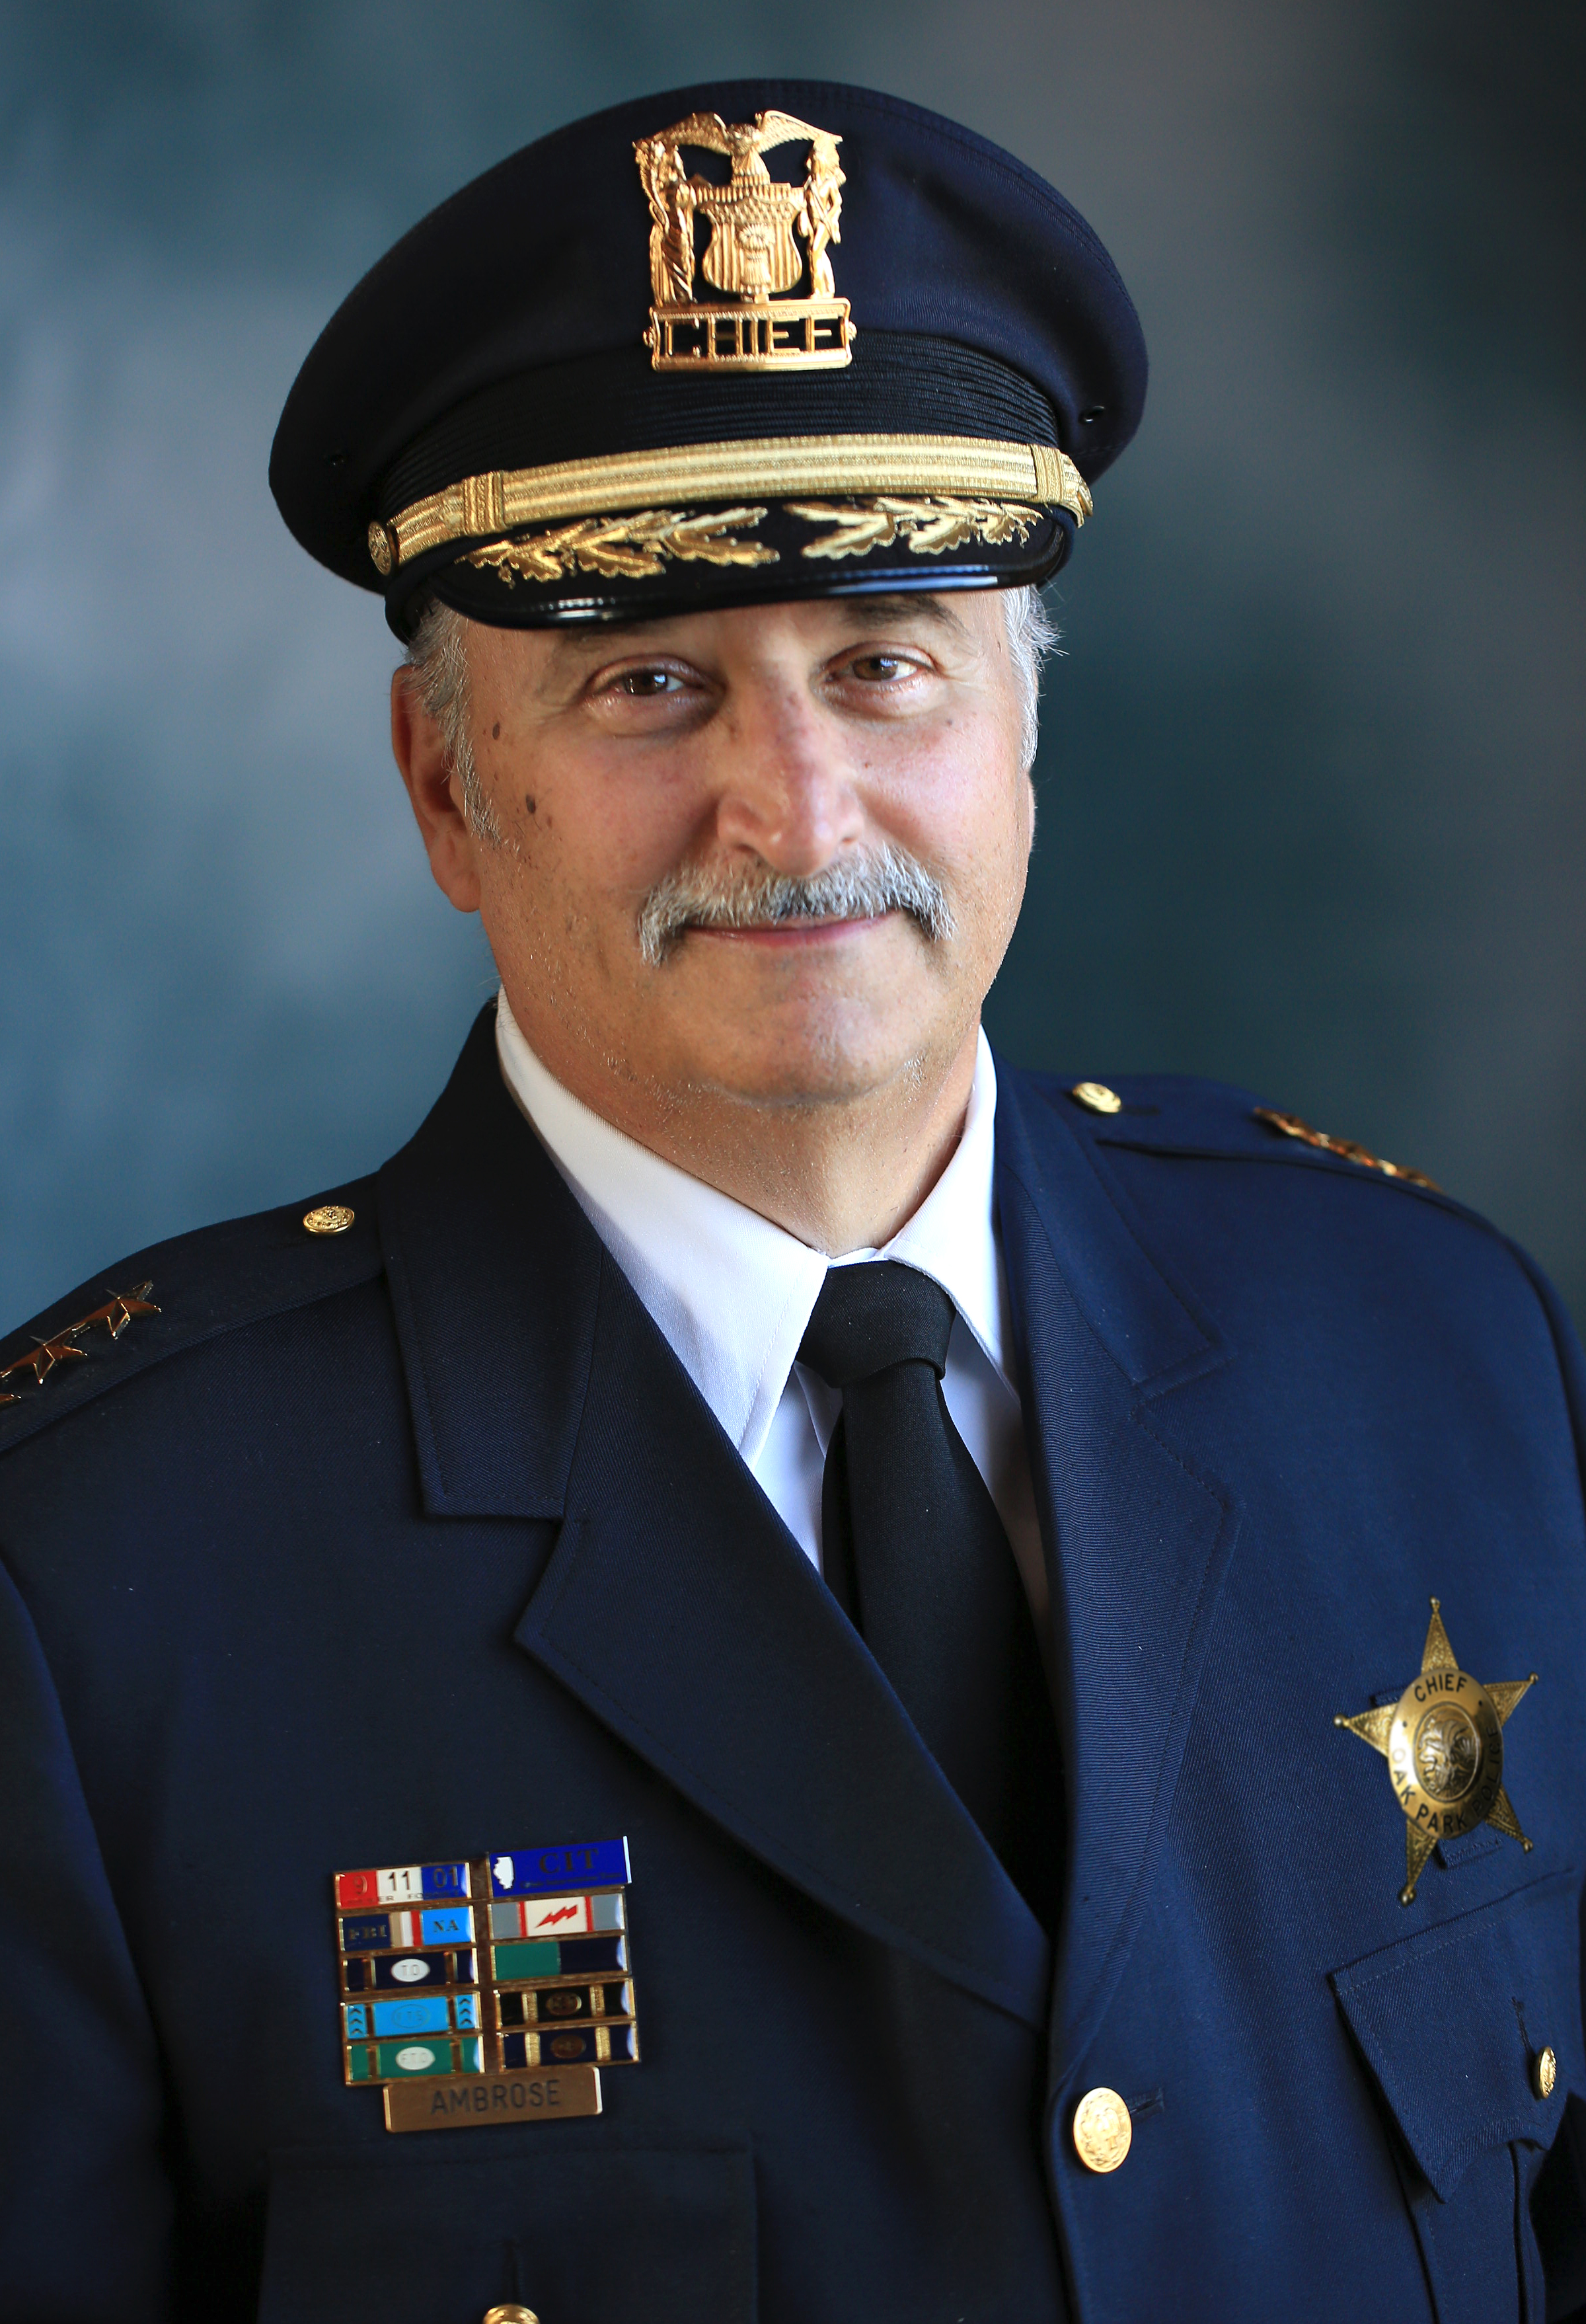 Photo of retiring Oak Park Police Chief Anthony Ambrose